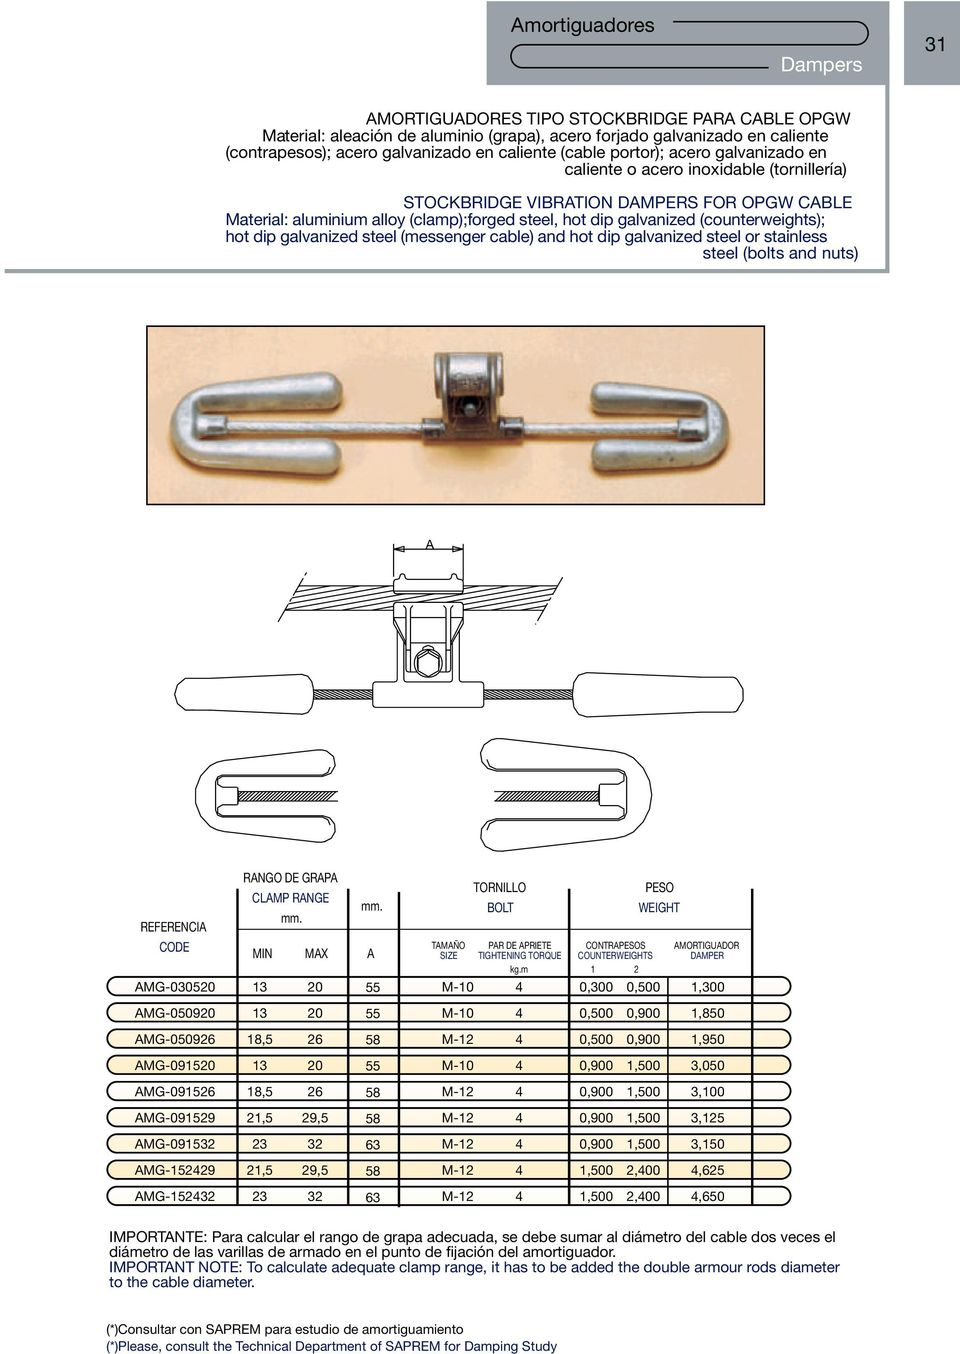 (counterweights); hot dip galvanized steel (messenger cable) and hot dip galvanized steel or stainless steel (bolts and nuts) A REFERENCIA RANGO DE GRAPA CLAMP RANGE mm.